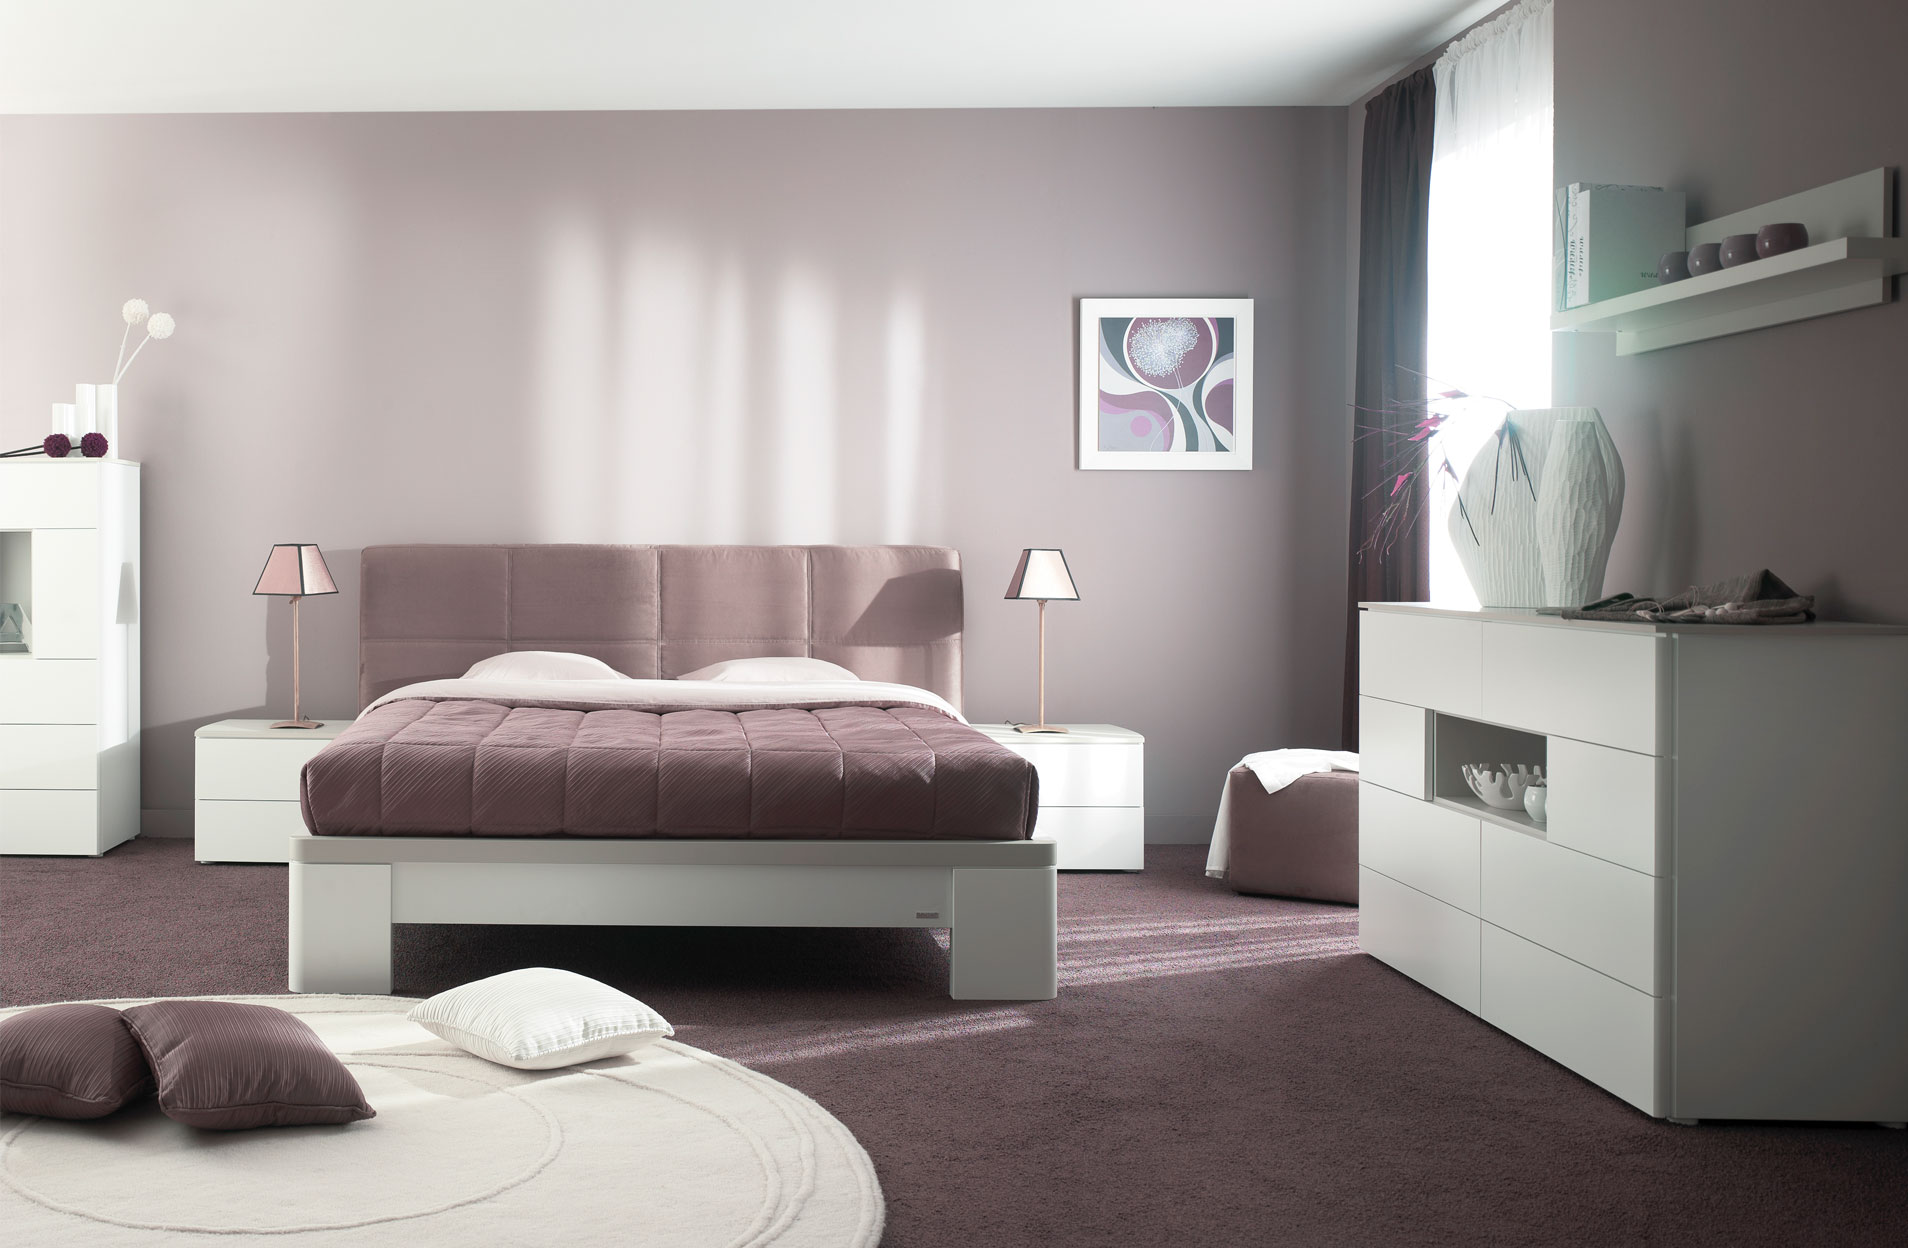 Inspiration d coration de chambre contemporaine gautier opalia for Exemple deco chambre adulte